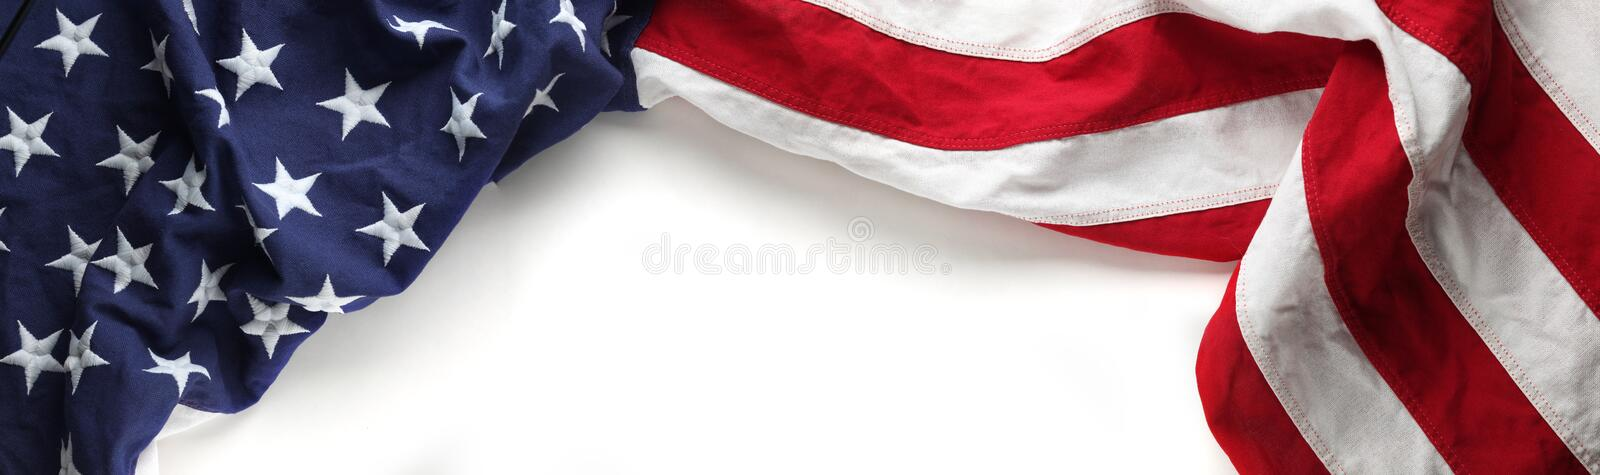 American flag for Memorial day or Veteran`s day background. Red, white, and blue American flag for Memorial day or Veteran`s day background stock photo